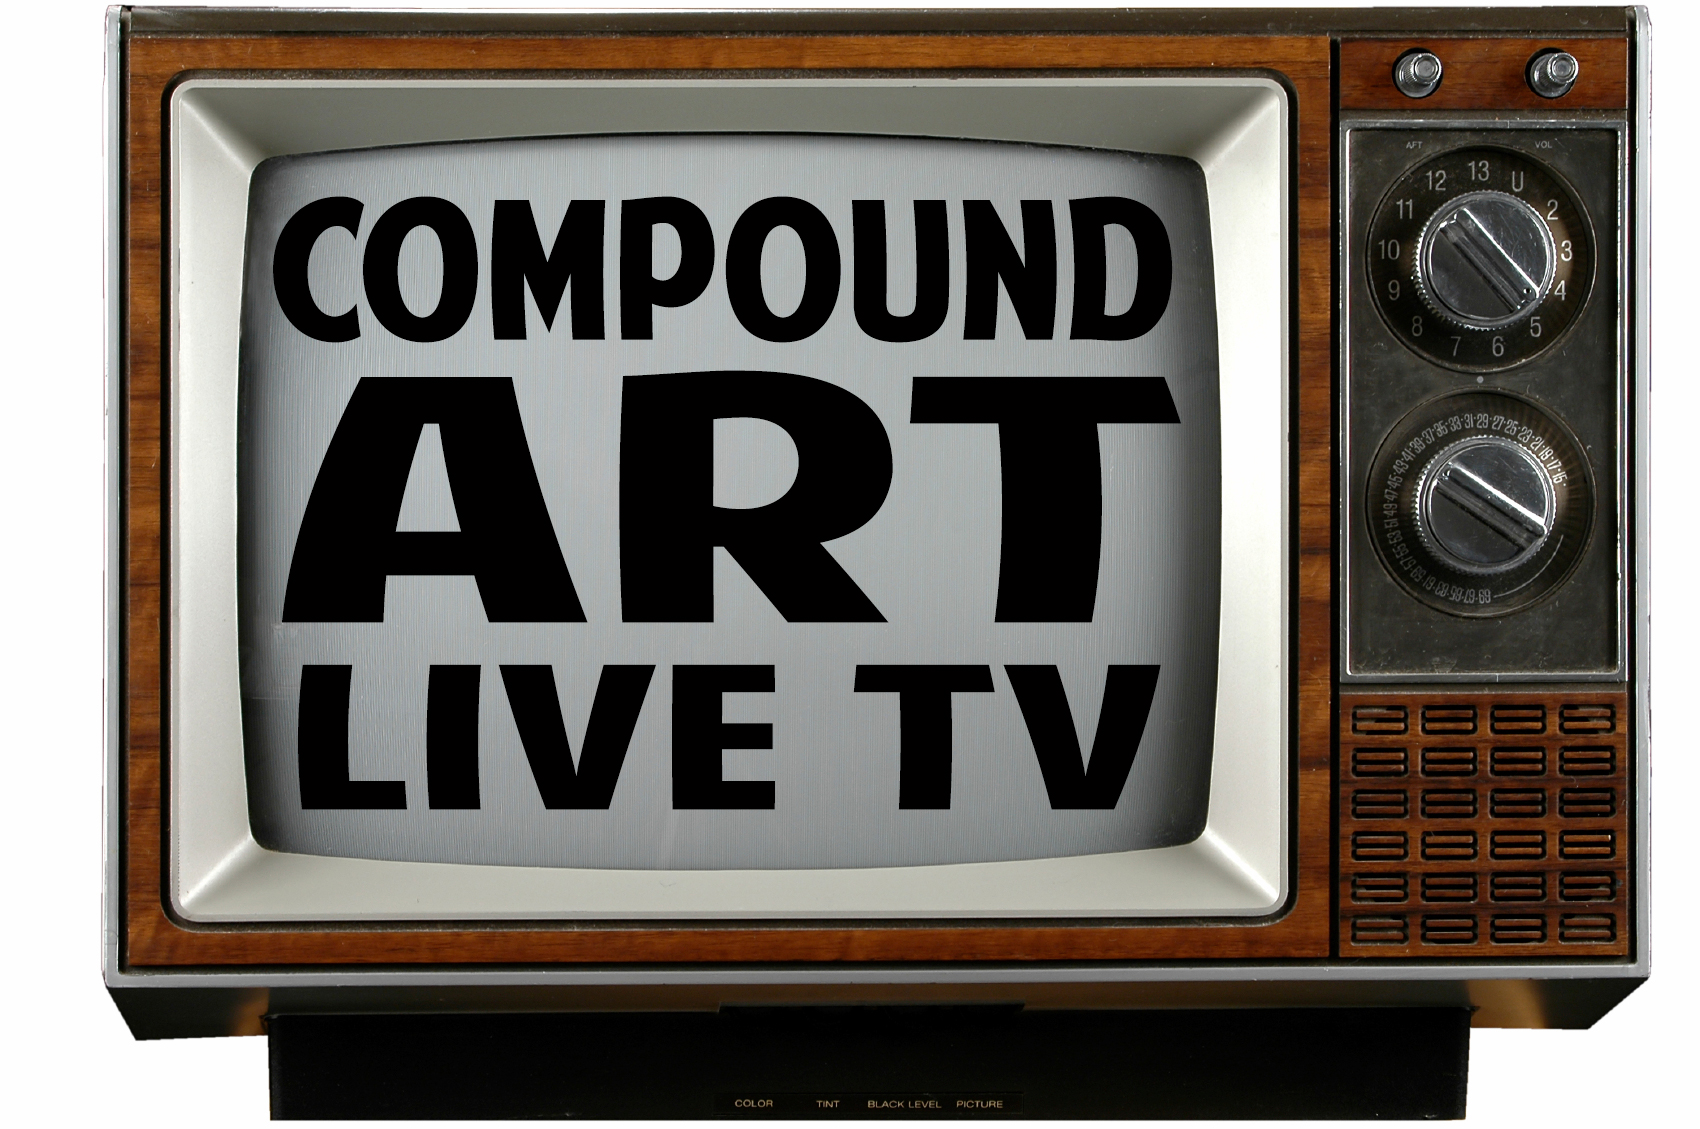 Tharp World on Compound TV